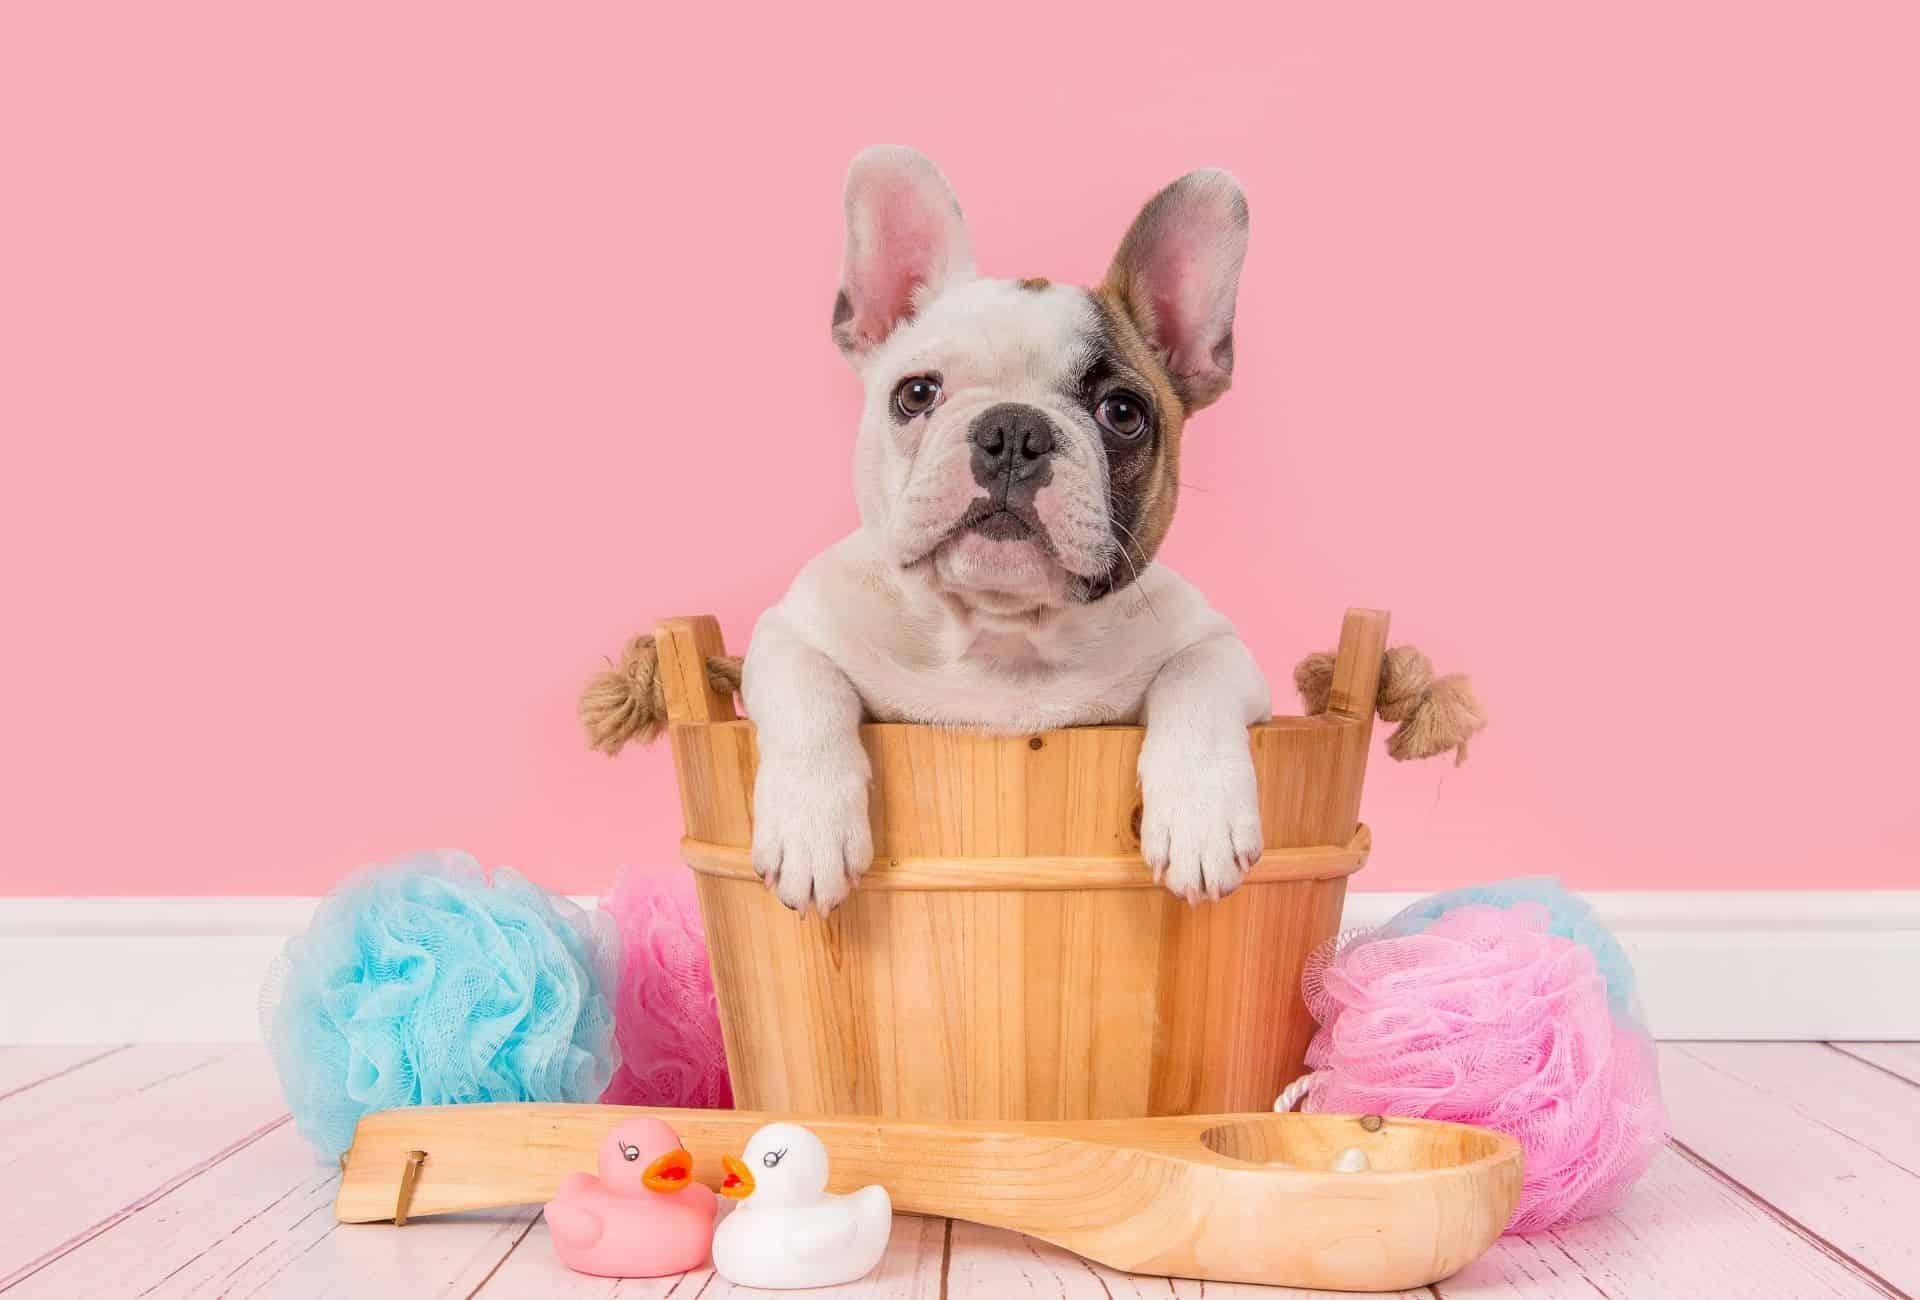 Cute French Bulldog sits in a wooden basket in front of a pink background.